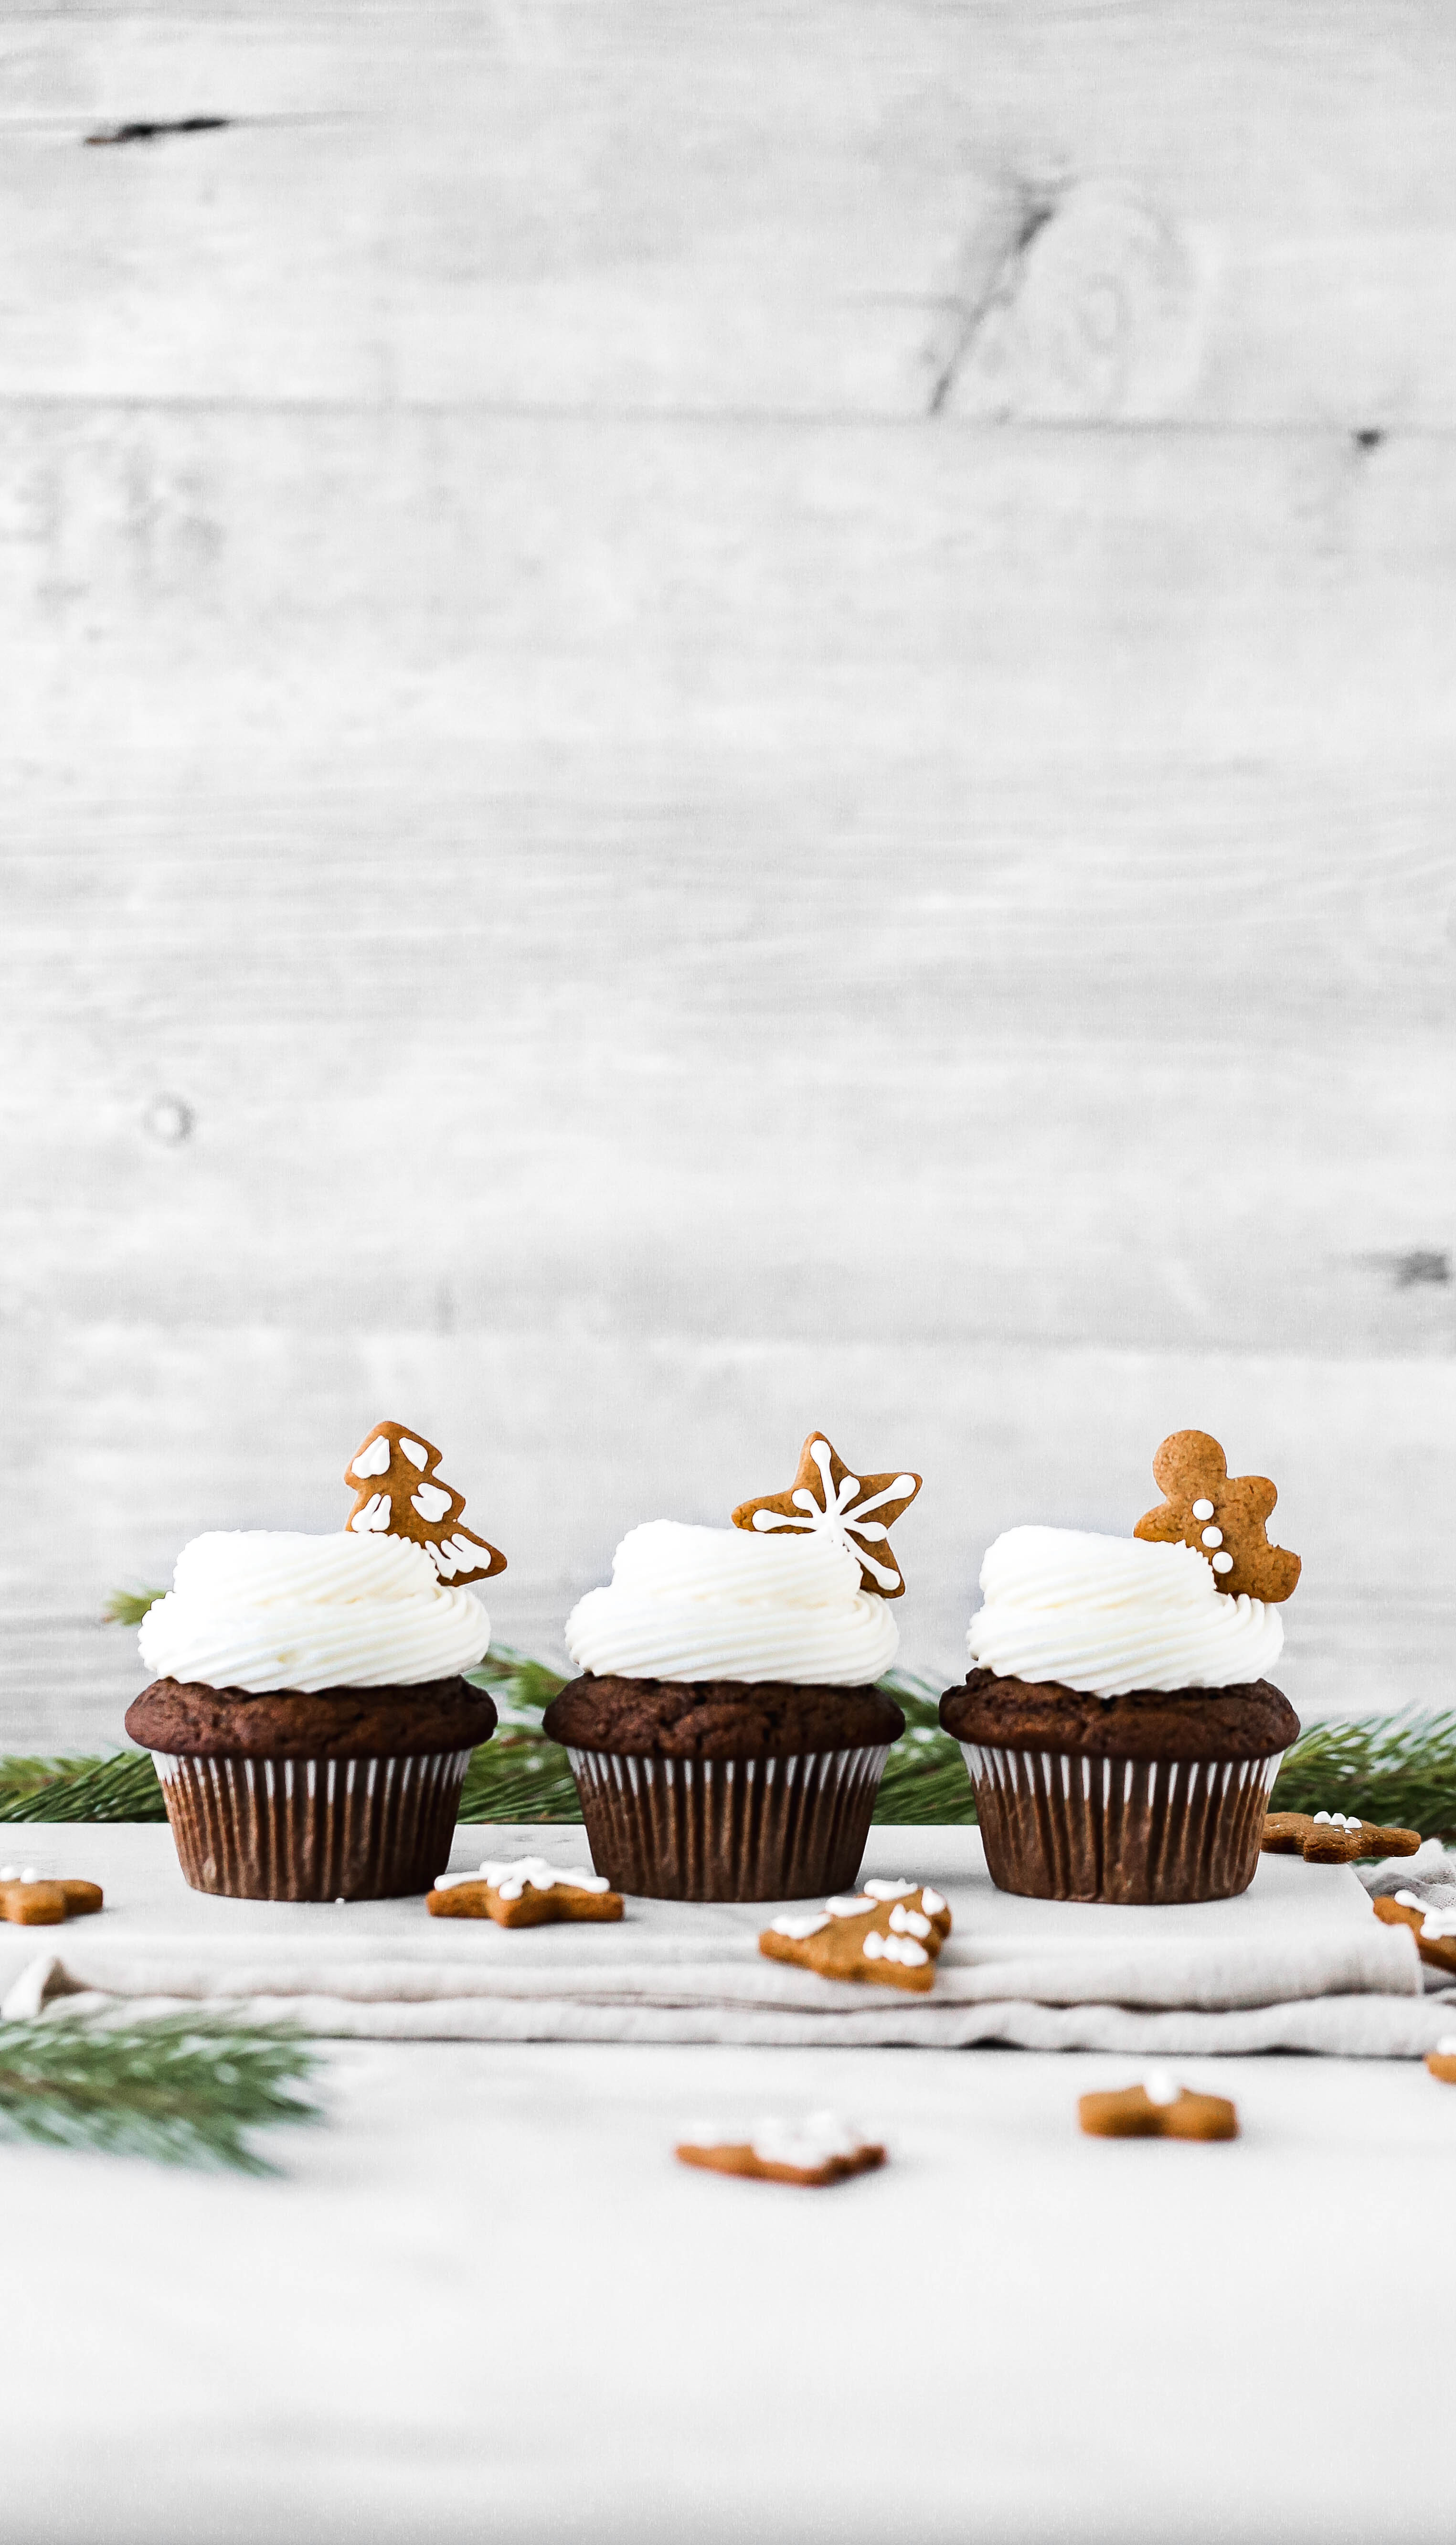 three gingerbread cupcakes on a serving board